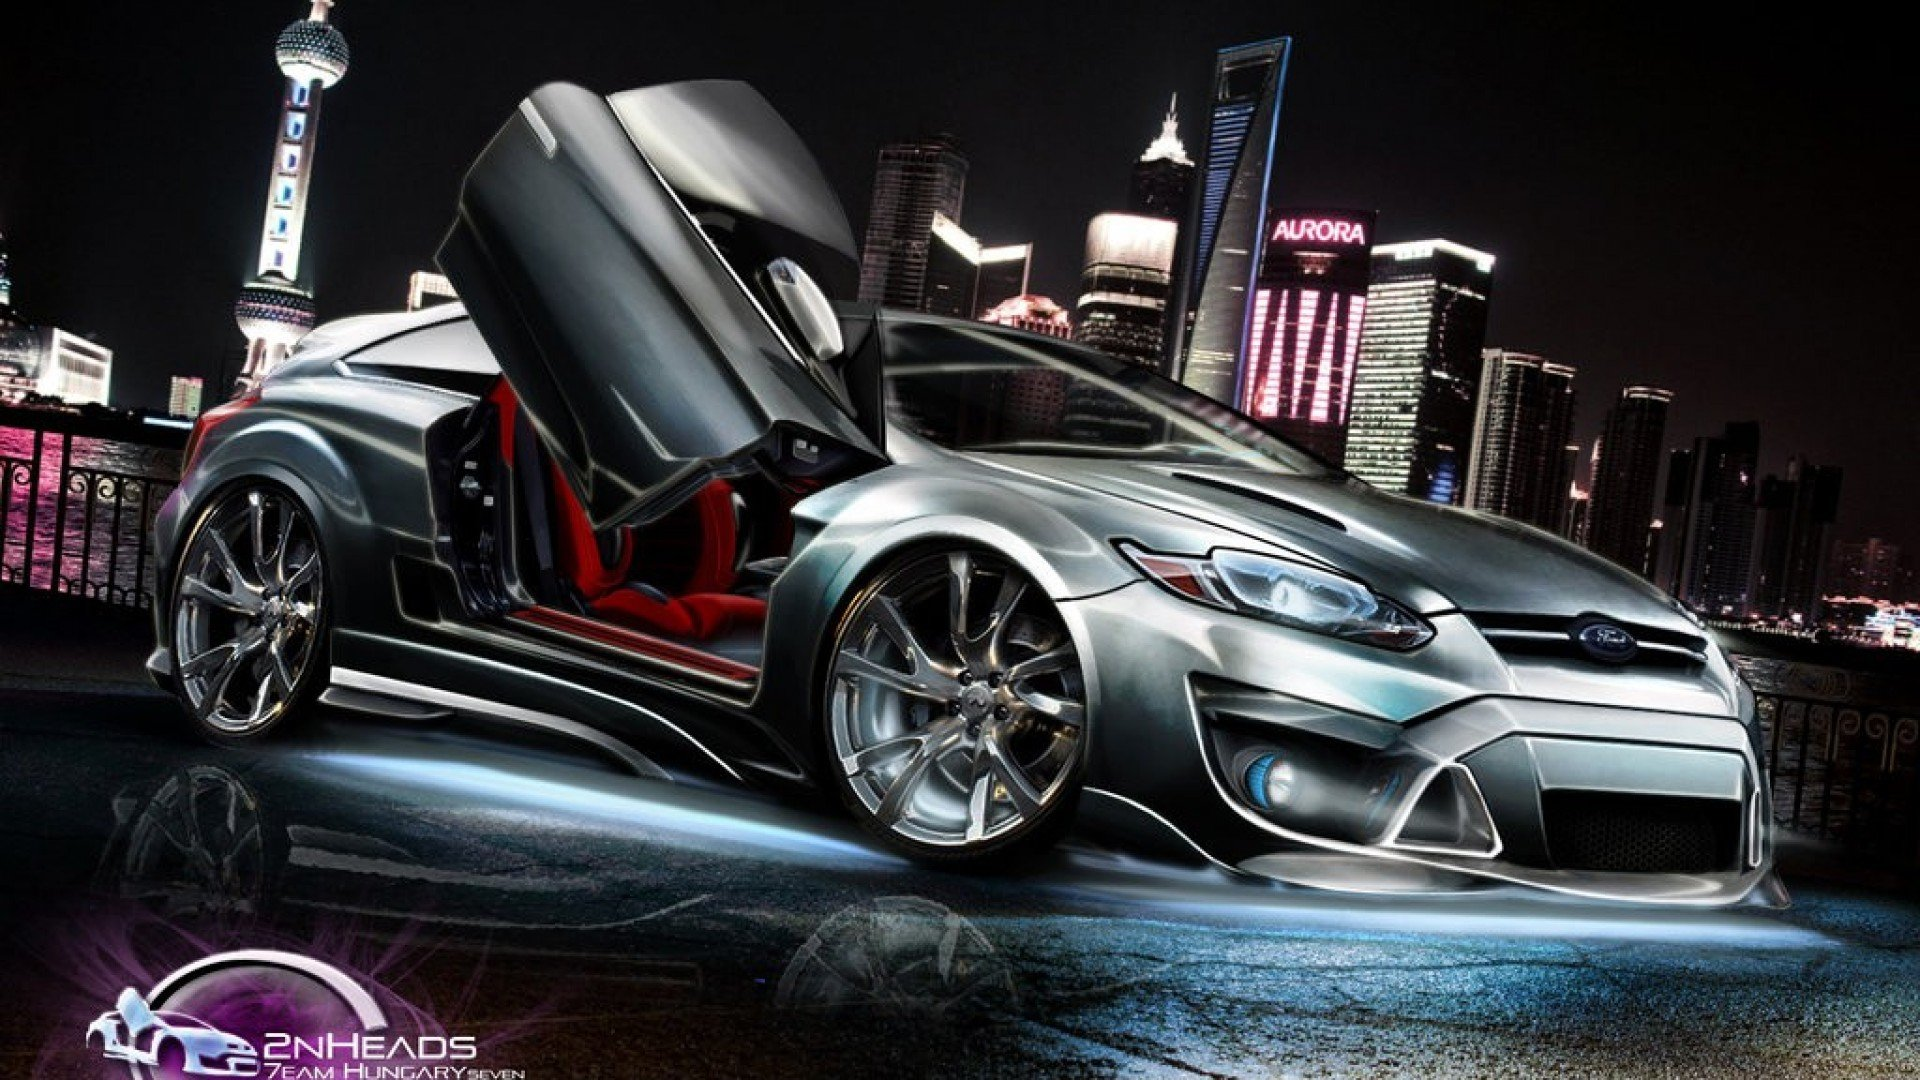 Tuning Cars Wallpaper Posted By Christopher Tremblay